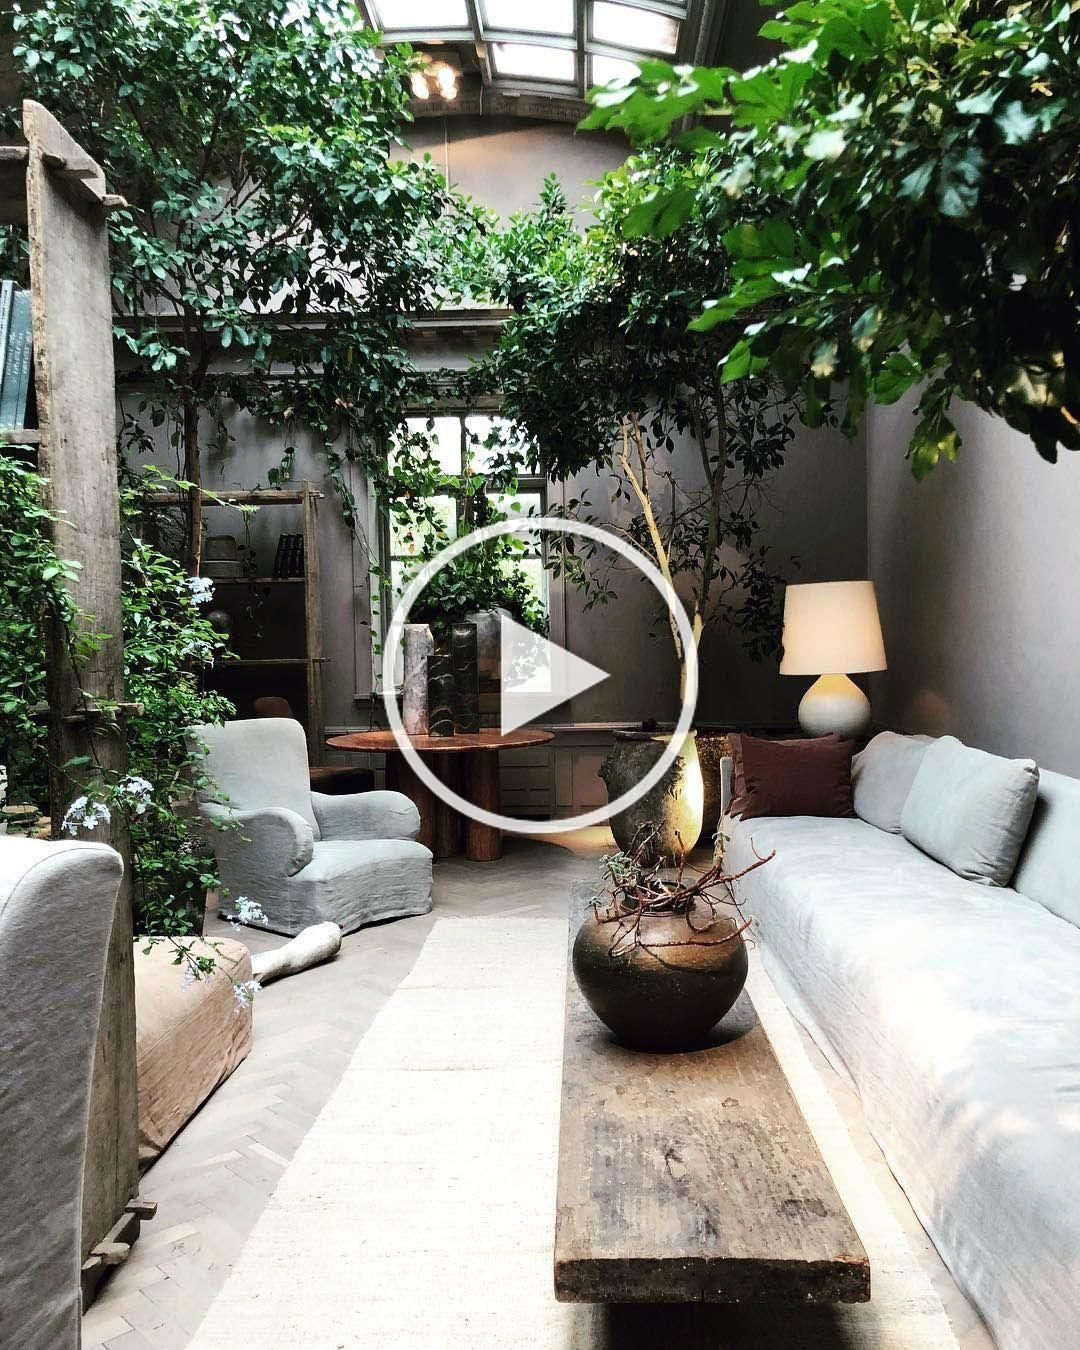 So Cool small balcony ideas 10 exclusive on homesable home decor